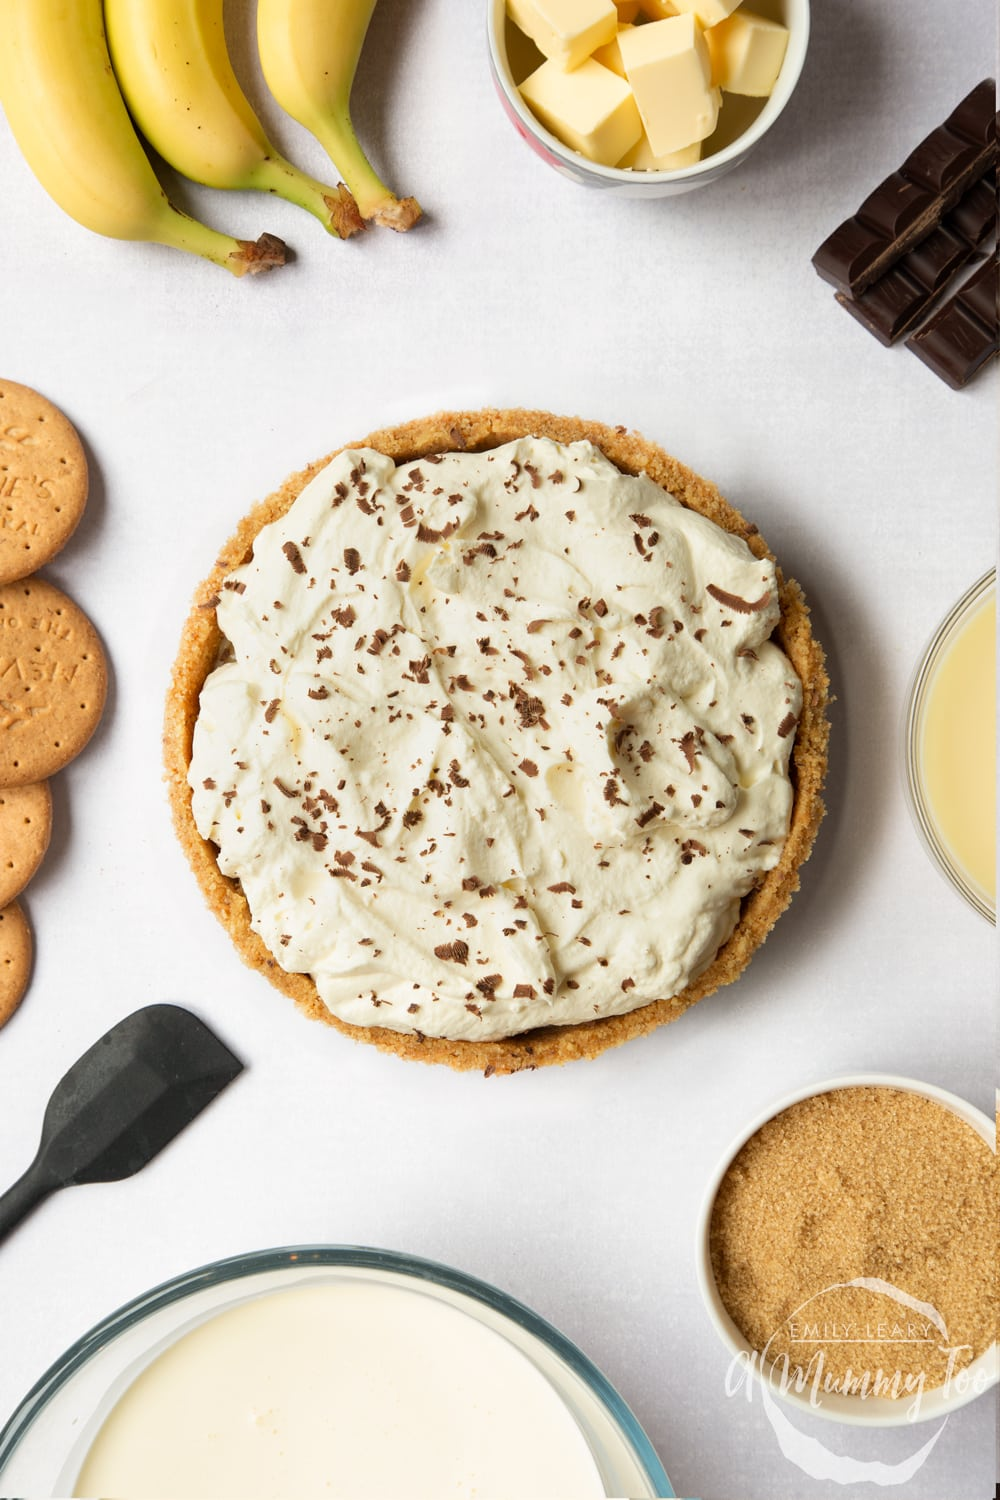 The perfect classic banoffee pie, shown from above